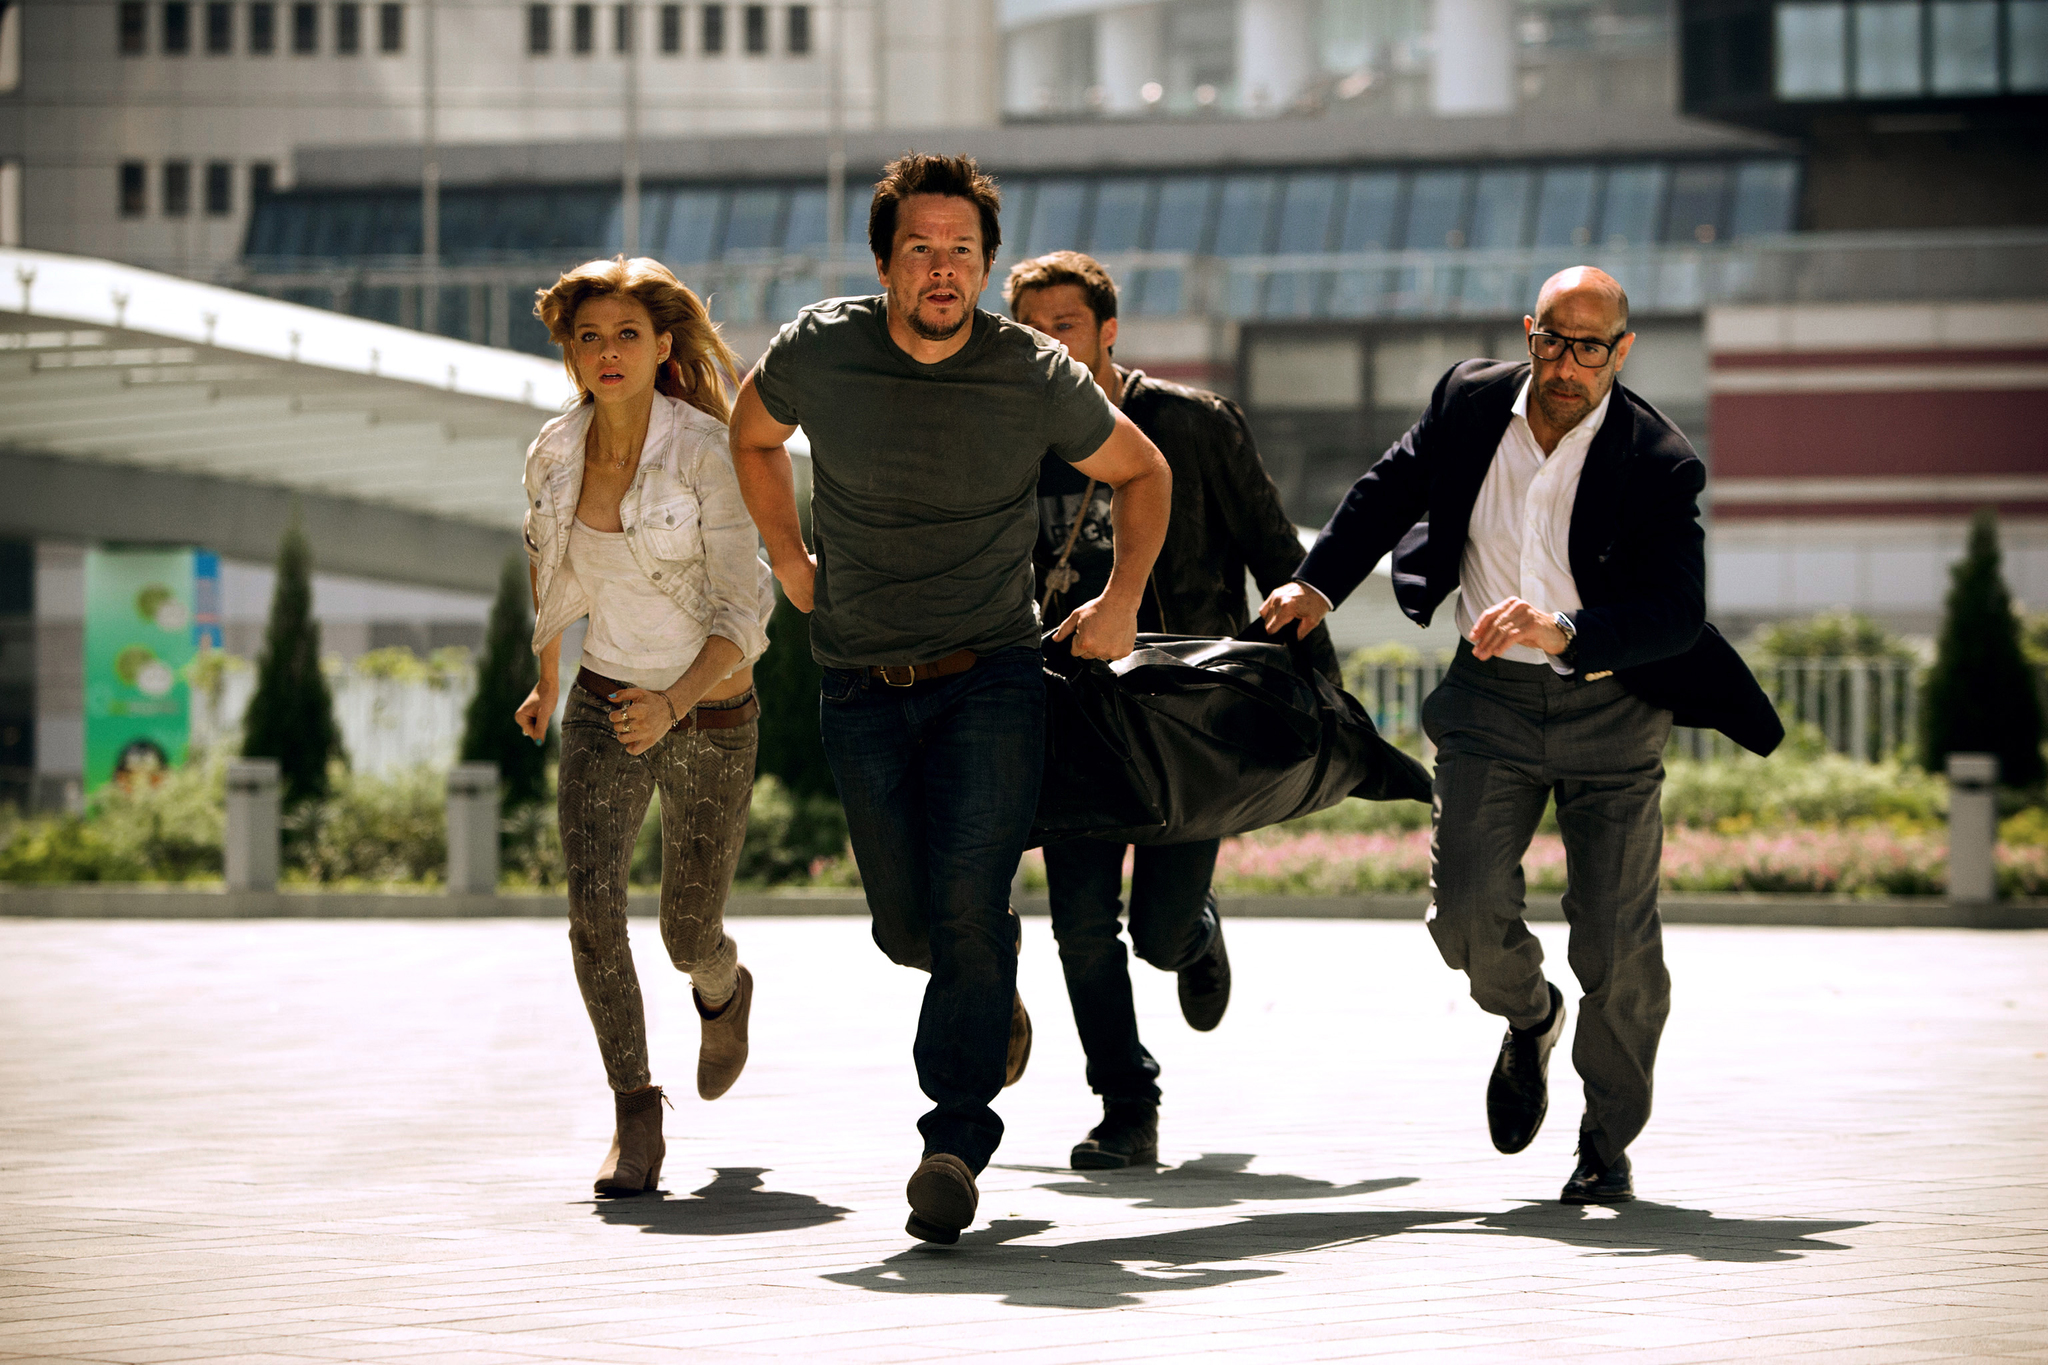 Mark Wahlberg, Stanley Tucci, Nicola Peltz, and Jack Reynor in Transformers: Age of Extinction (2014)